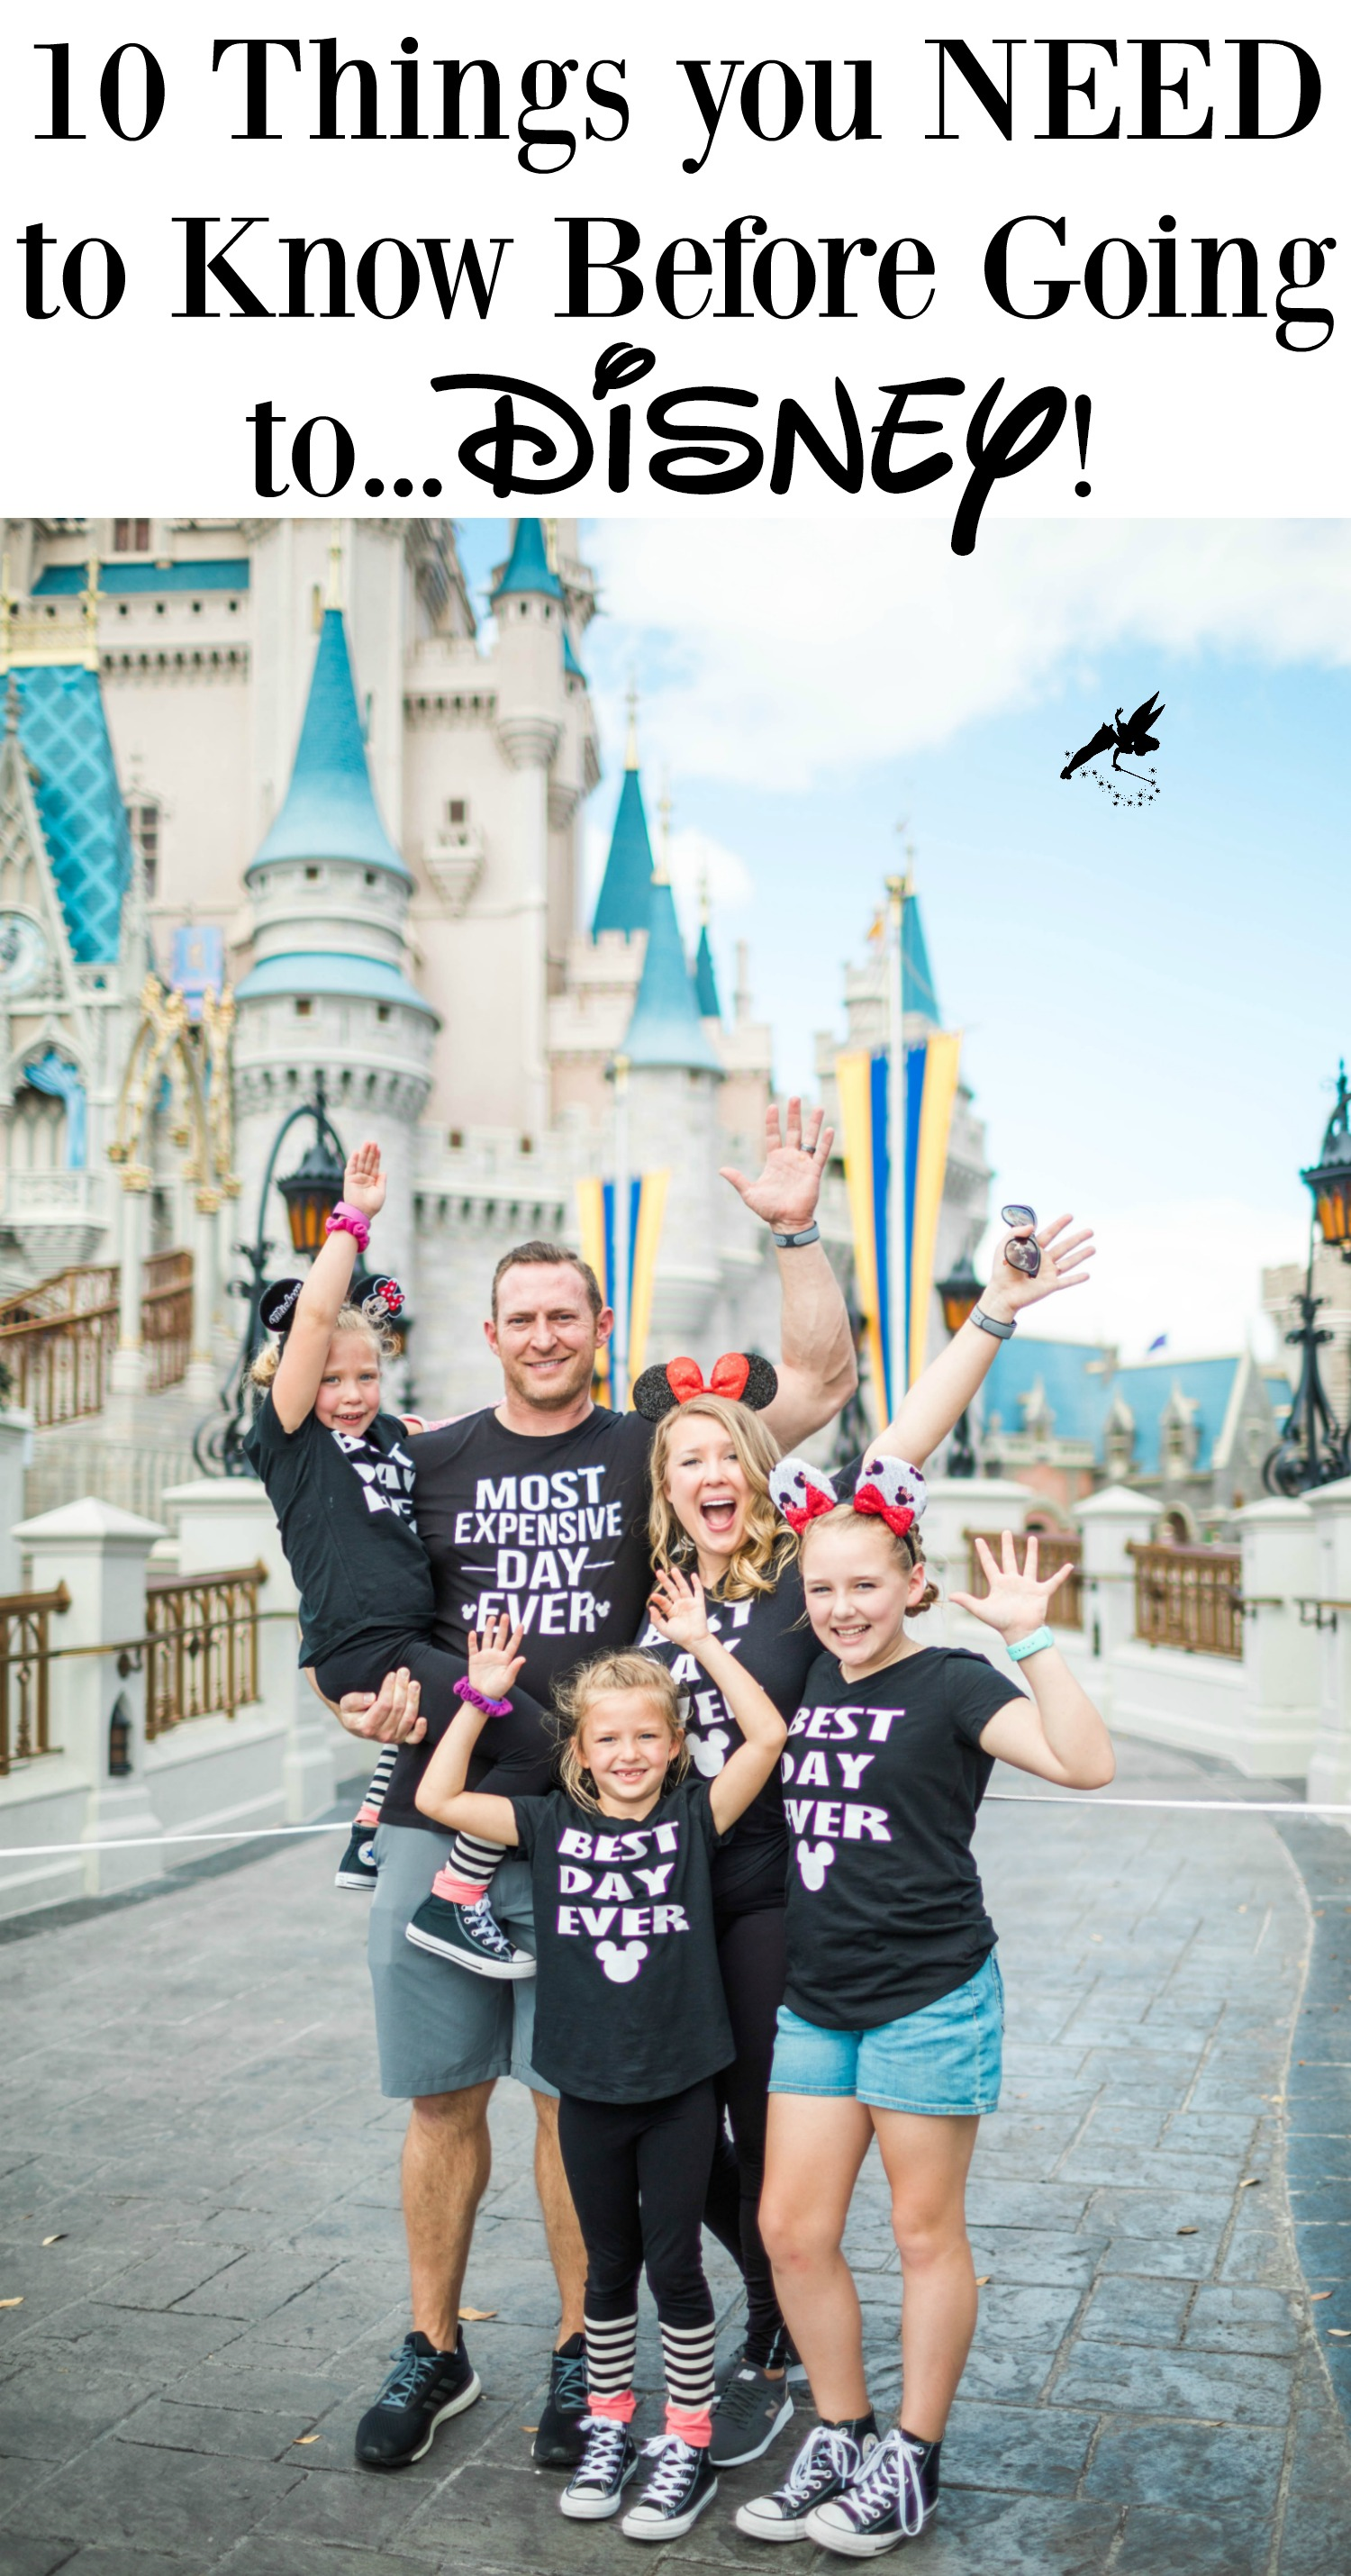 10 Things You Need to Know Before Going to Disney